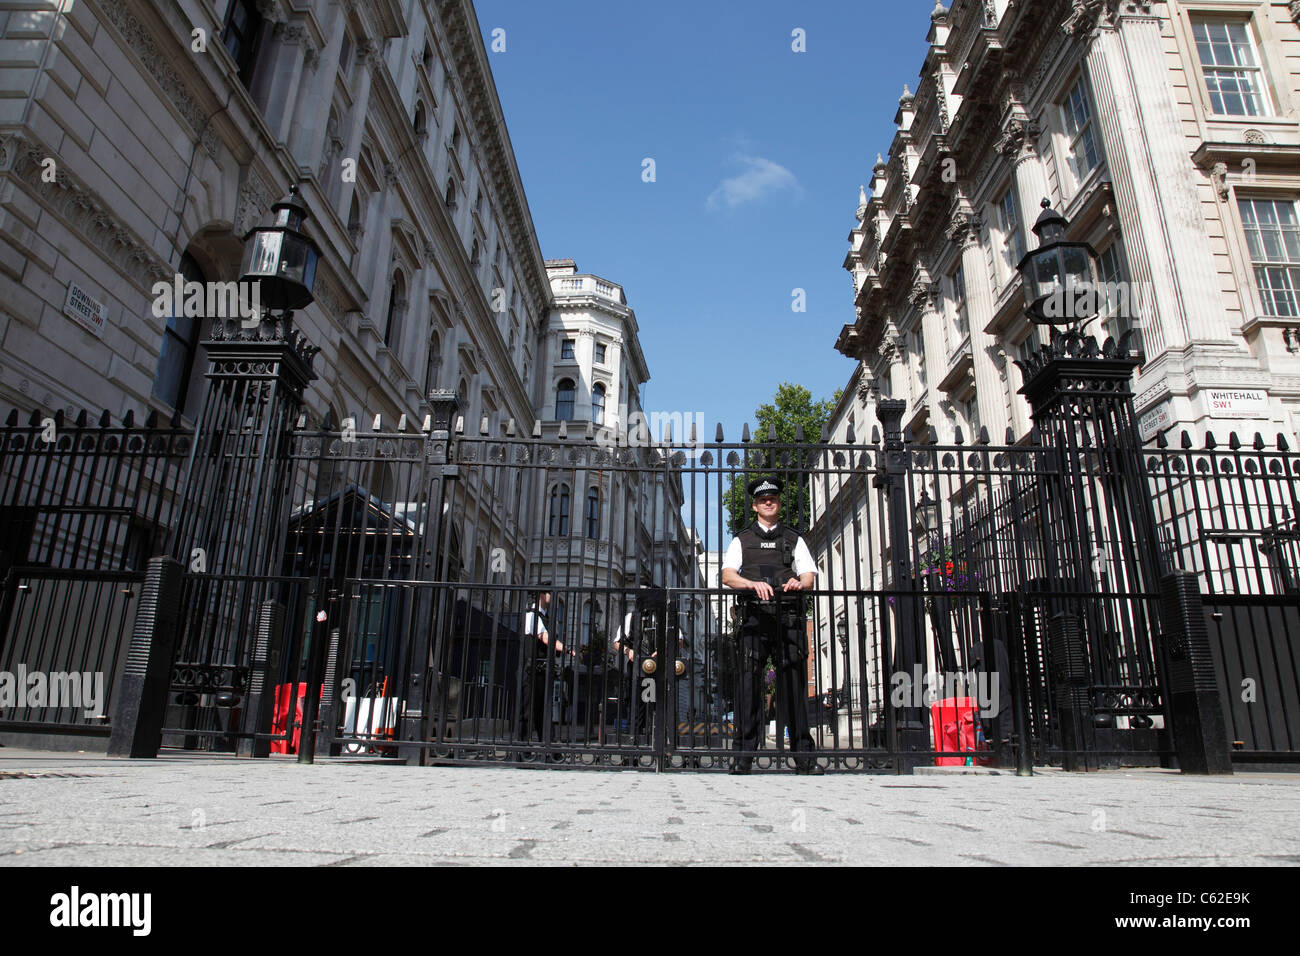 Armed Police guard the entrance to Downing Street, Westminster, London, England, U.K. - Stock Image